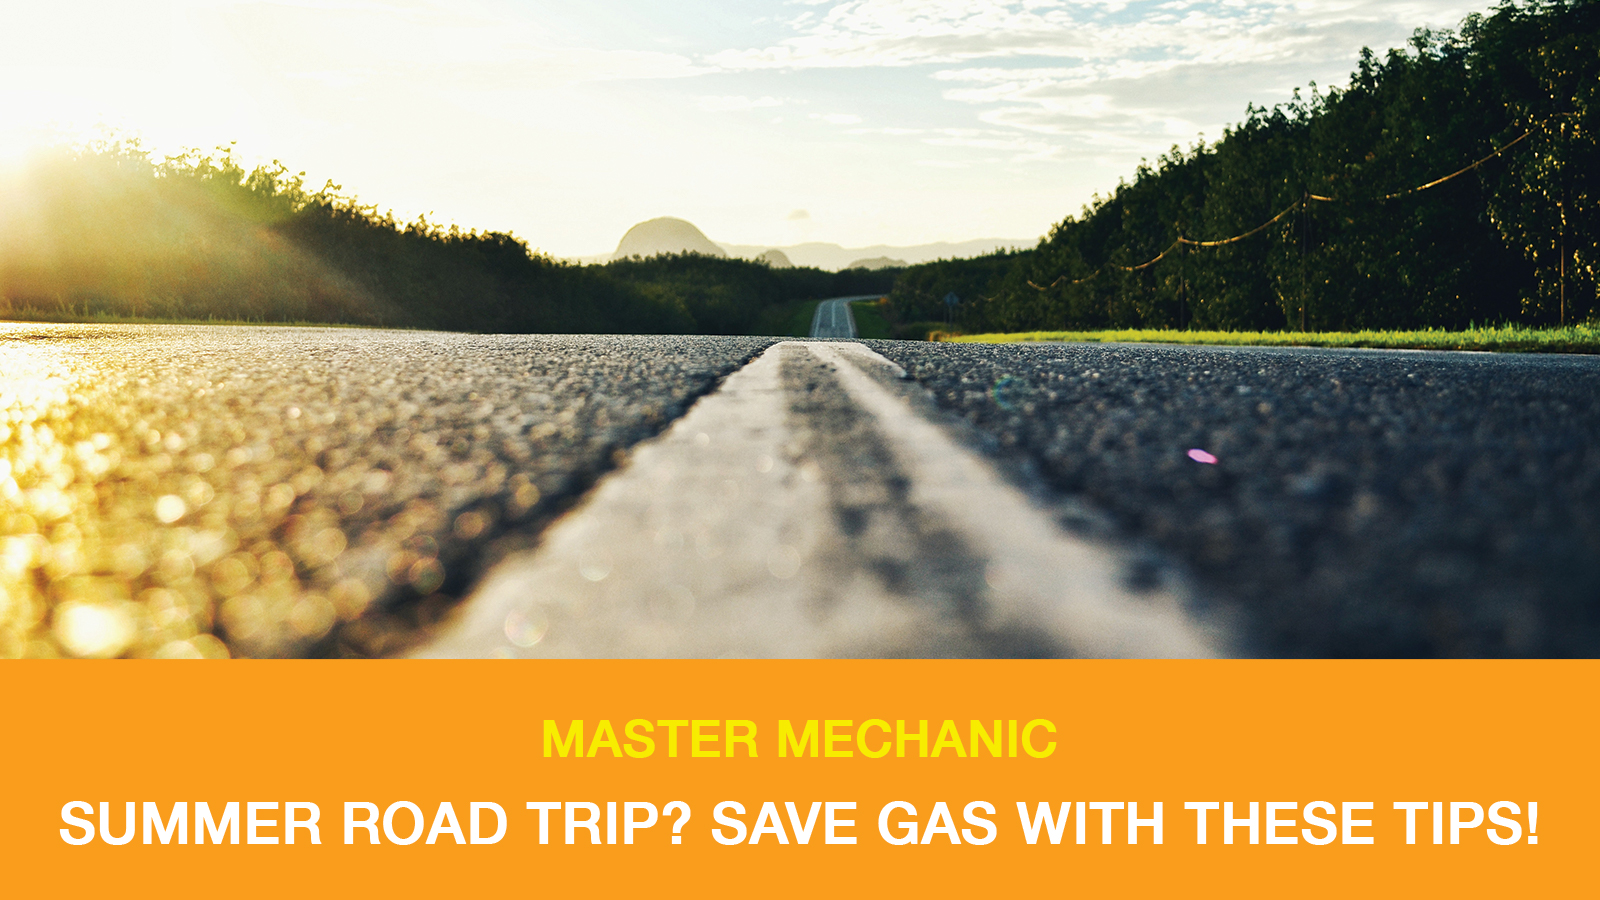 Gas Road Trip Summer Road Trip Save Gas With These Master Mechanic Tips